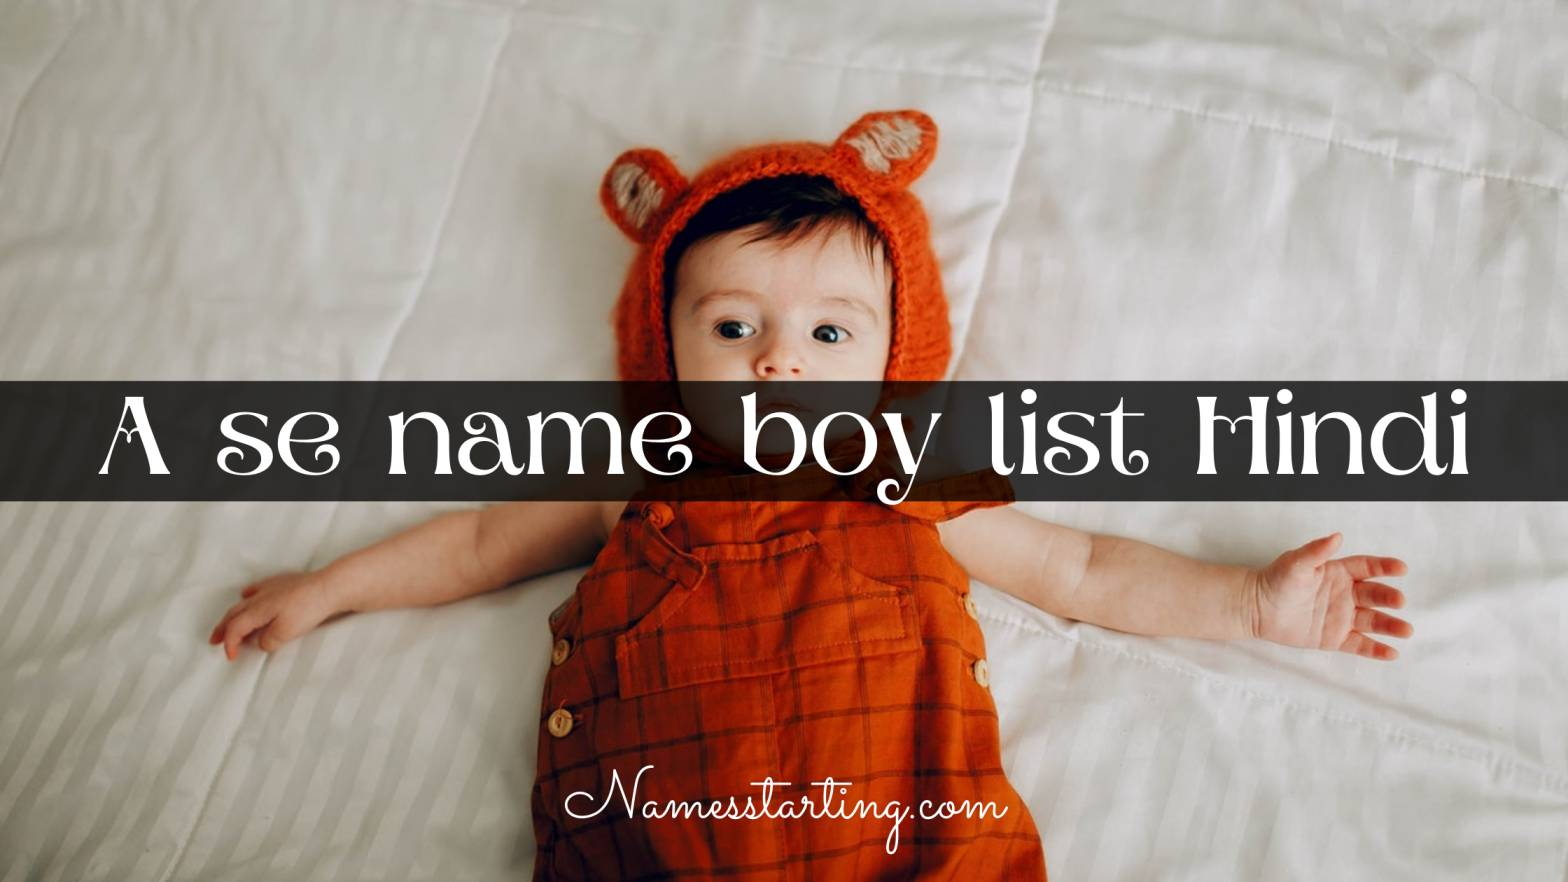 a se name boy list Hindi, a letter names for boy hindu latest, name of baby girl starting with a in Hindu, boy names starting with a, sanskrit baby boy names with a, baby boy names starting with a, a letter names for boy Hindu, a letter names for boy, a se name boy, a word name boy, a alphabet names for boy, unique boy names starting with a, a letter baby boy names, name for baby girl start with a, Sanskrit boy names with a, a letter names for boy in Telugu, baby boy names Hindu 2021 starting with a, Sanskrit baby boy names starting with a, Arabic boy names starting with a, Hindu names starting with a, modern baby boy names starting with a, baby boy names a letter, a se baby boy names